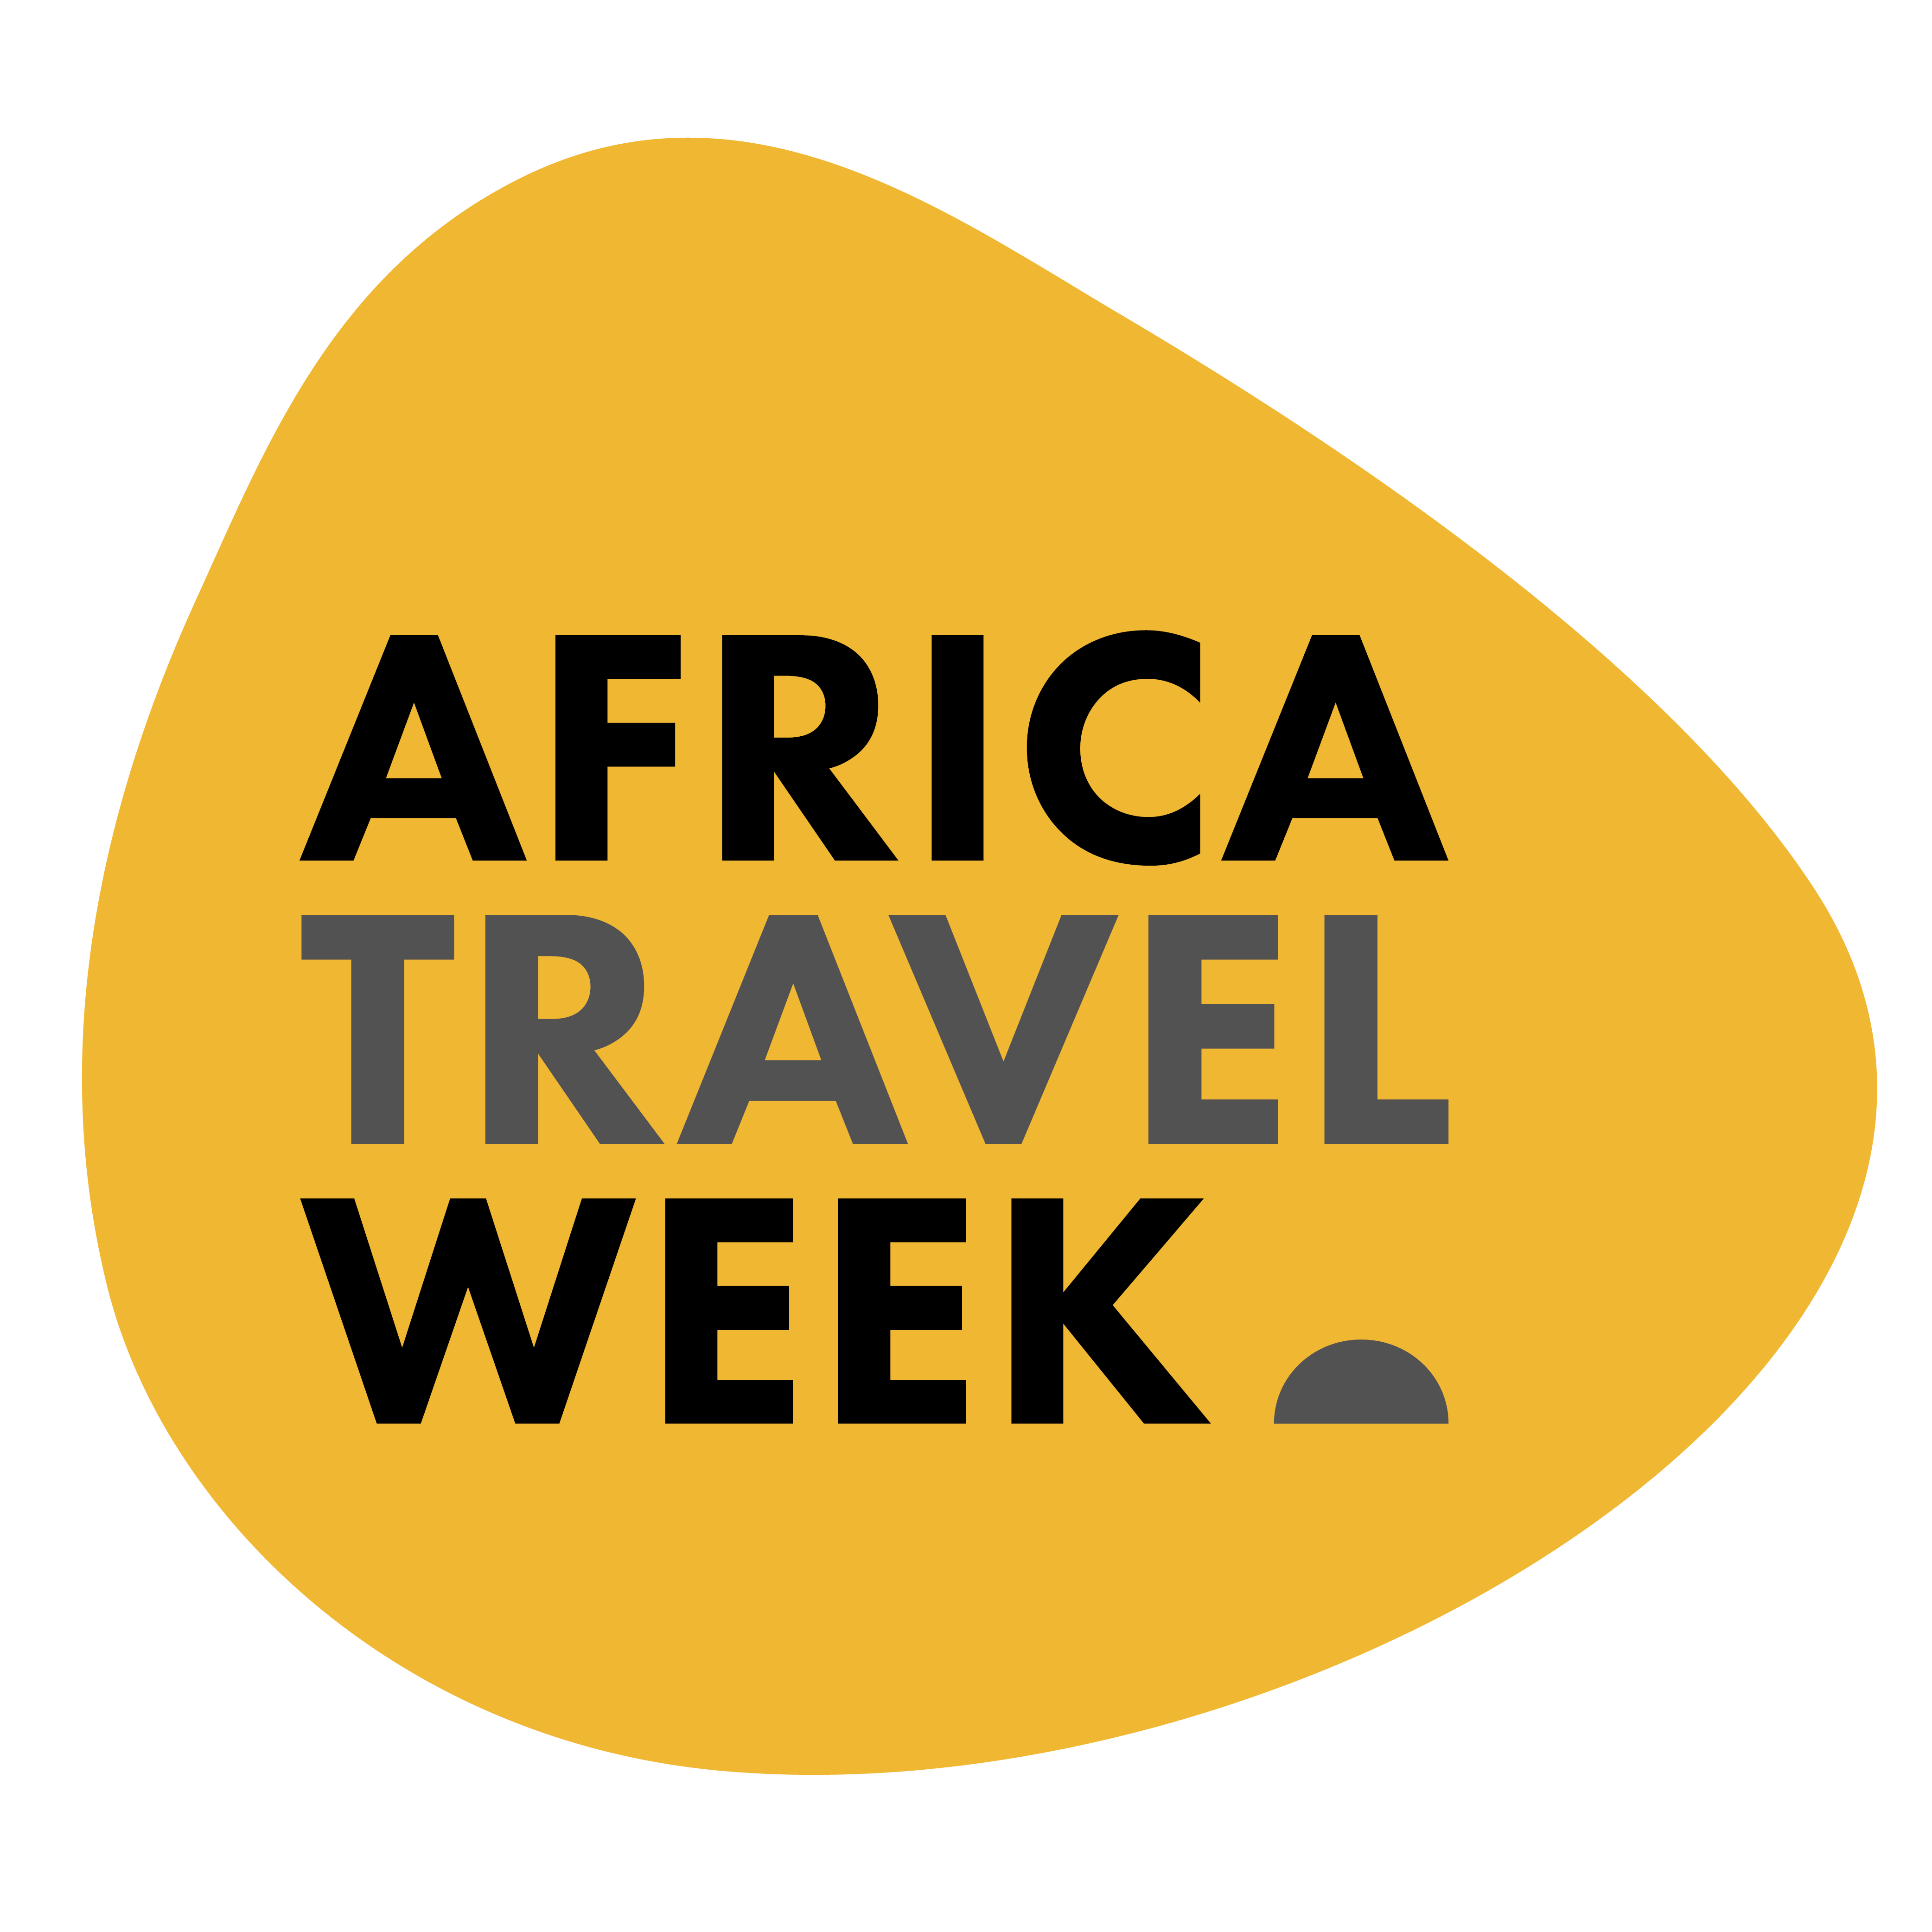 Africa Travel Week/Reed Exhibitions Logo